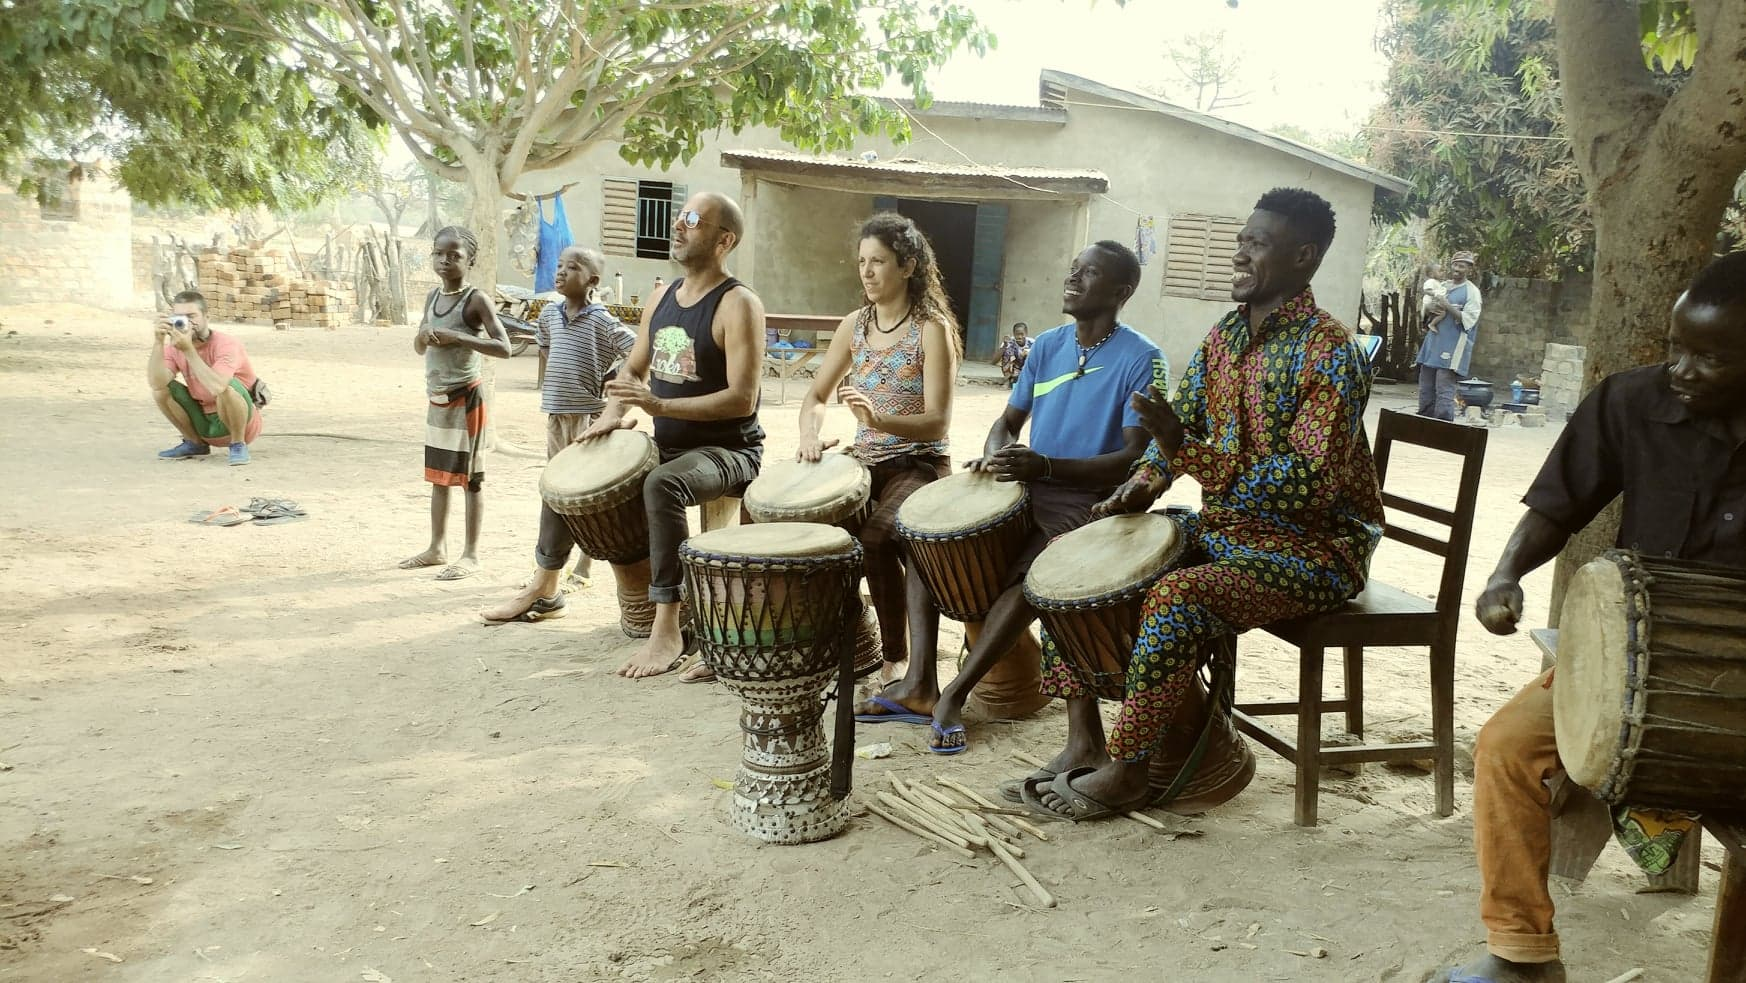 drumdance in village Nma